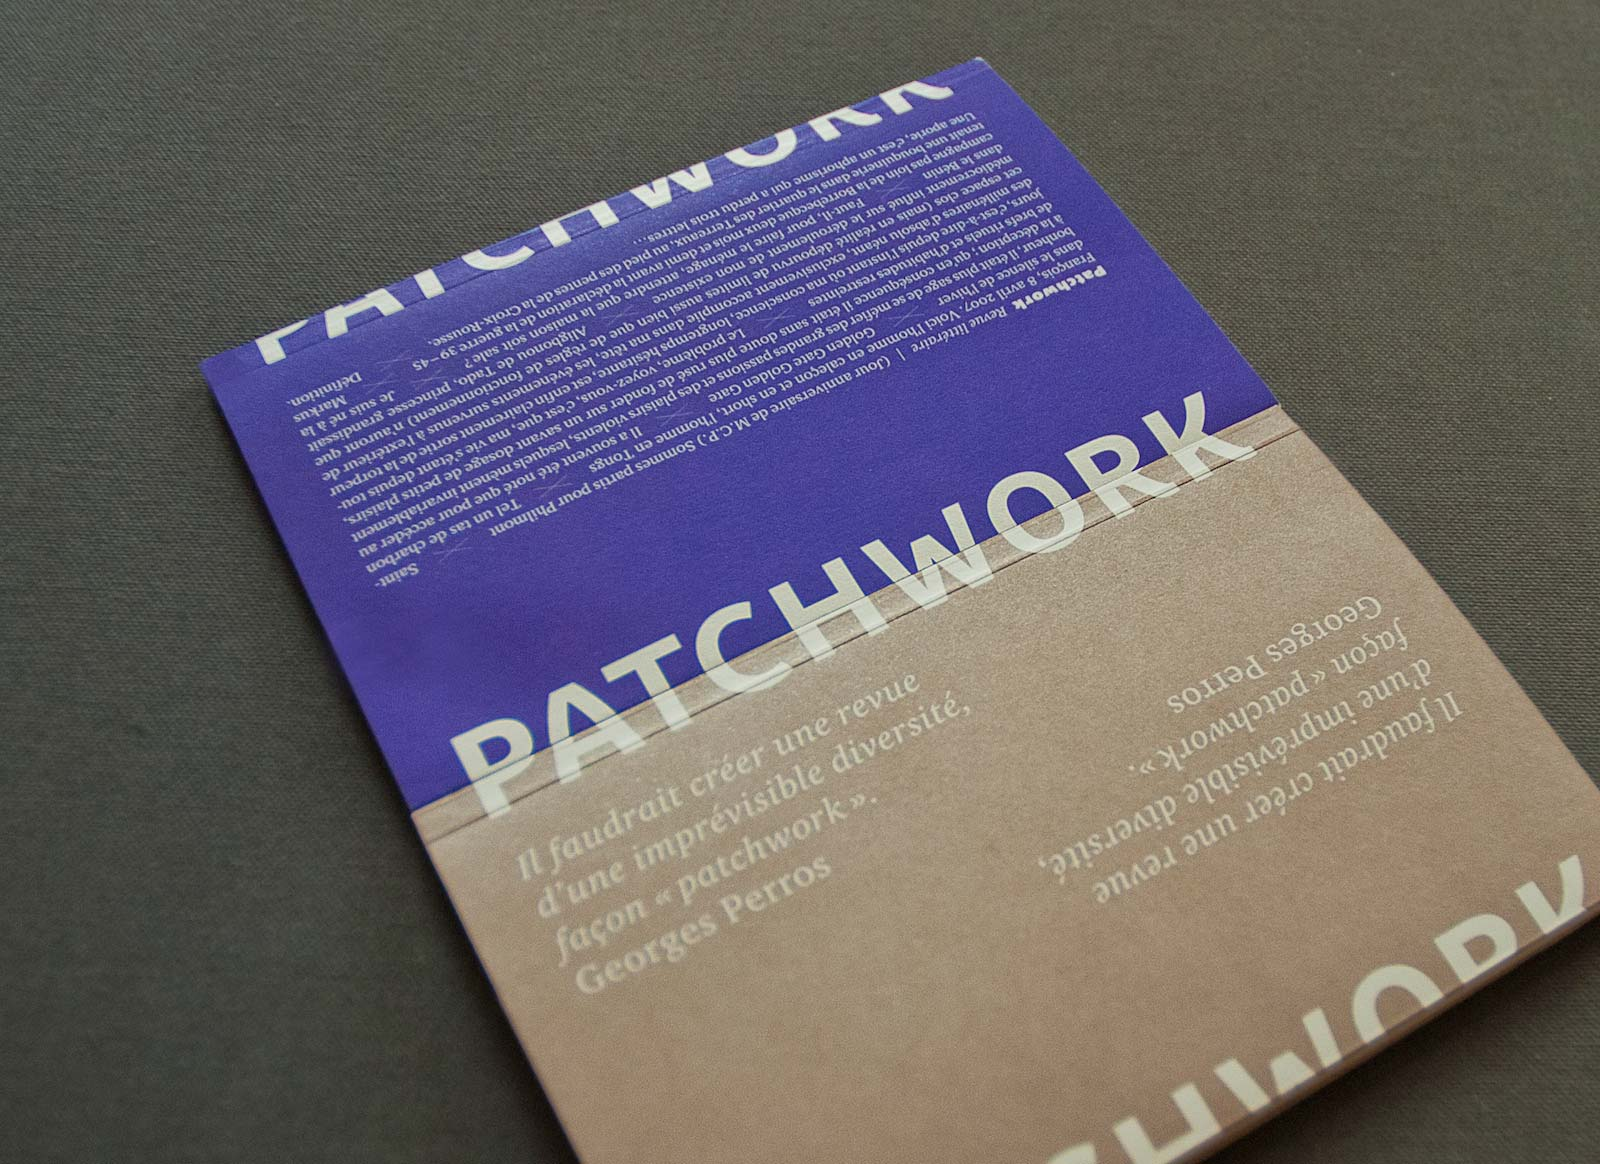 Patchwork, a literary review set in Parisine Plus by Sébastien Lordez